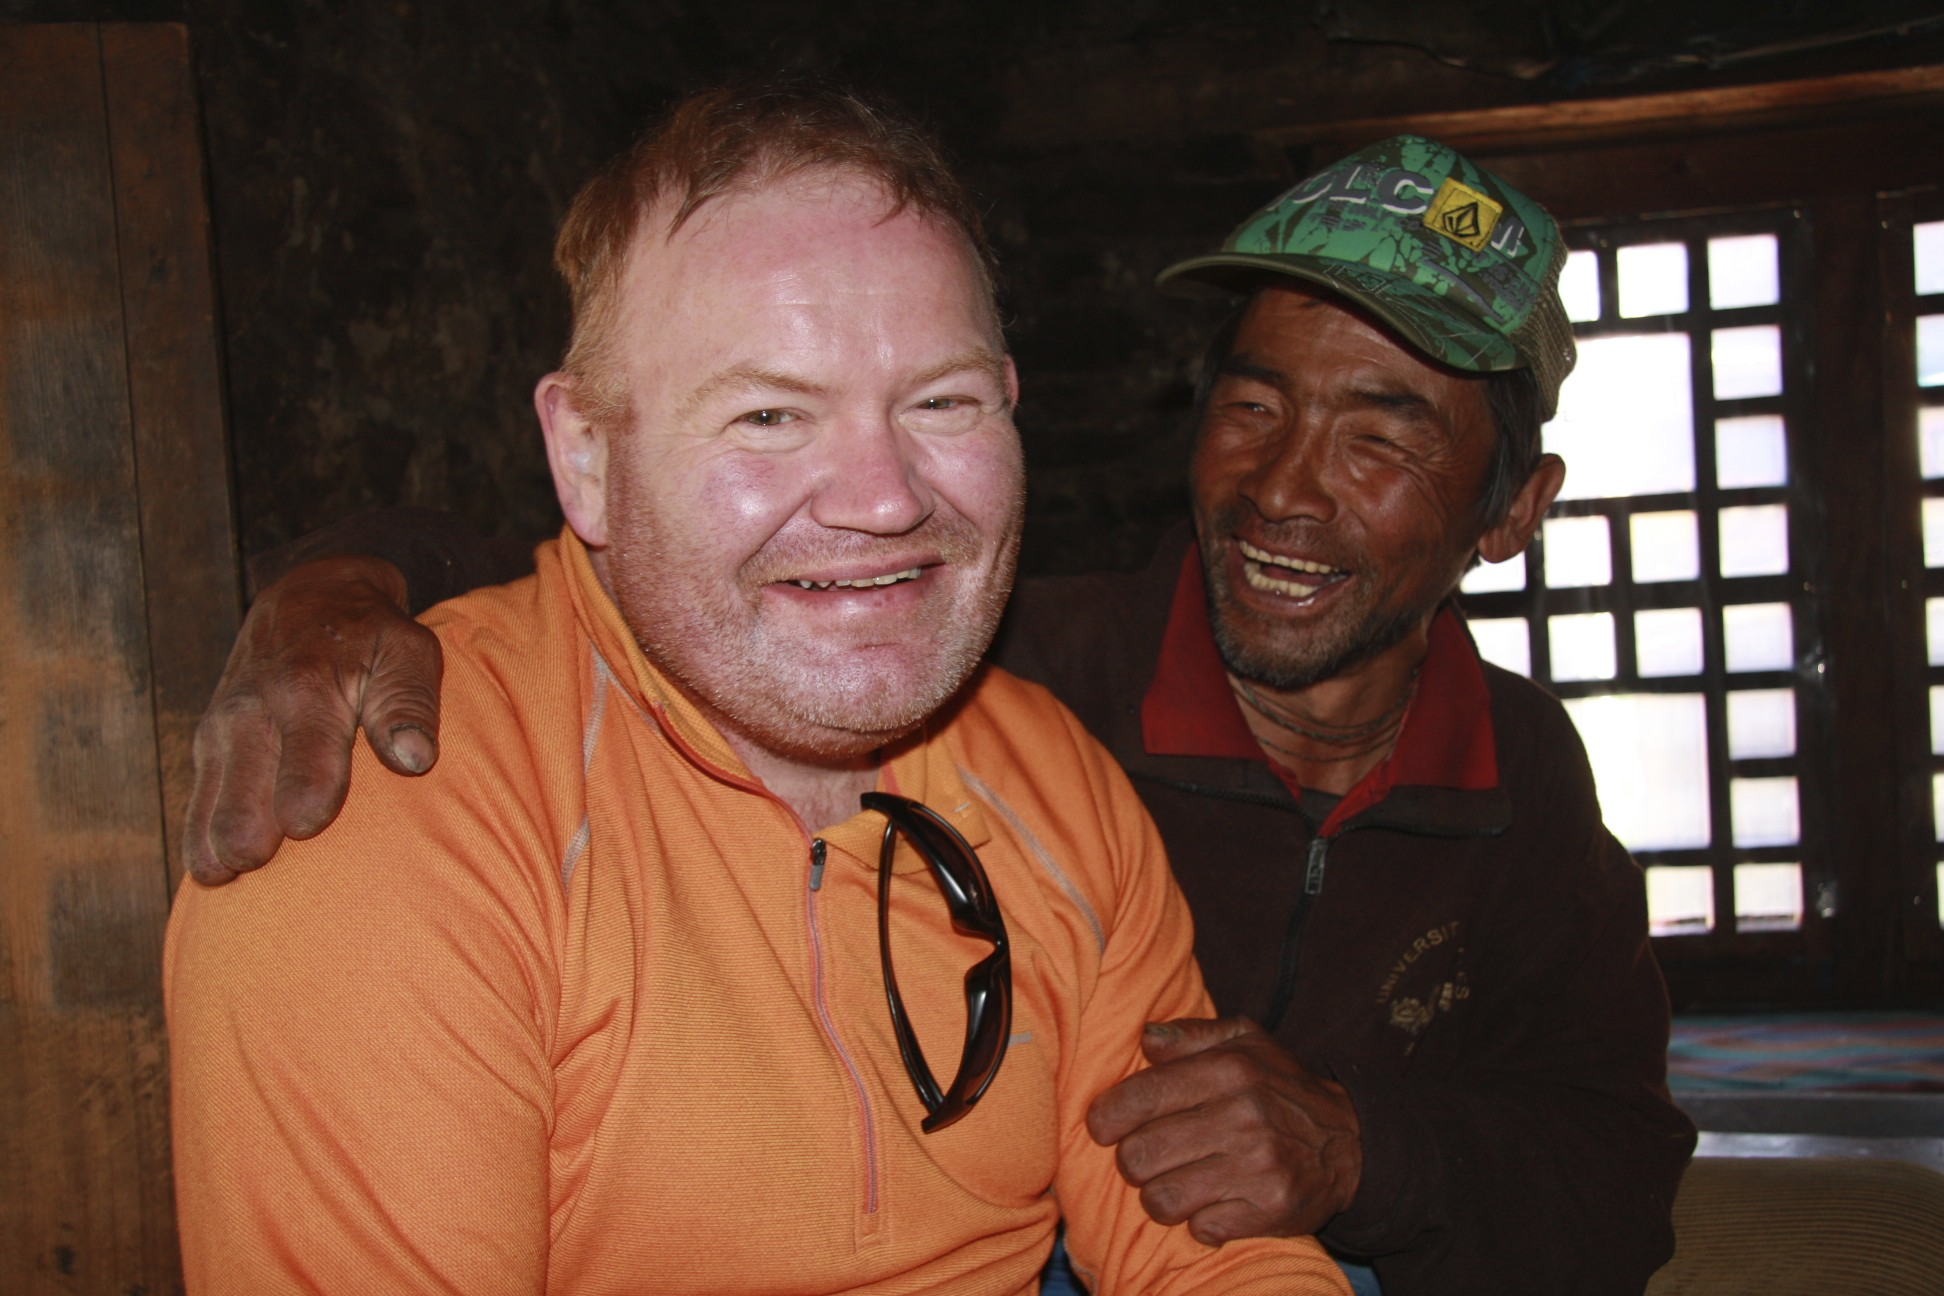 The man who lost all of his fingers on Manaslu